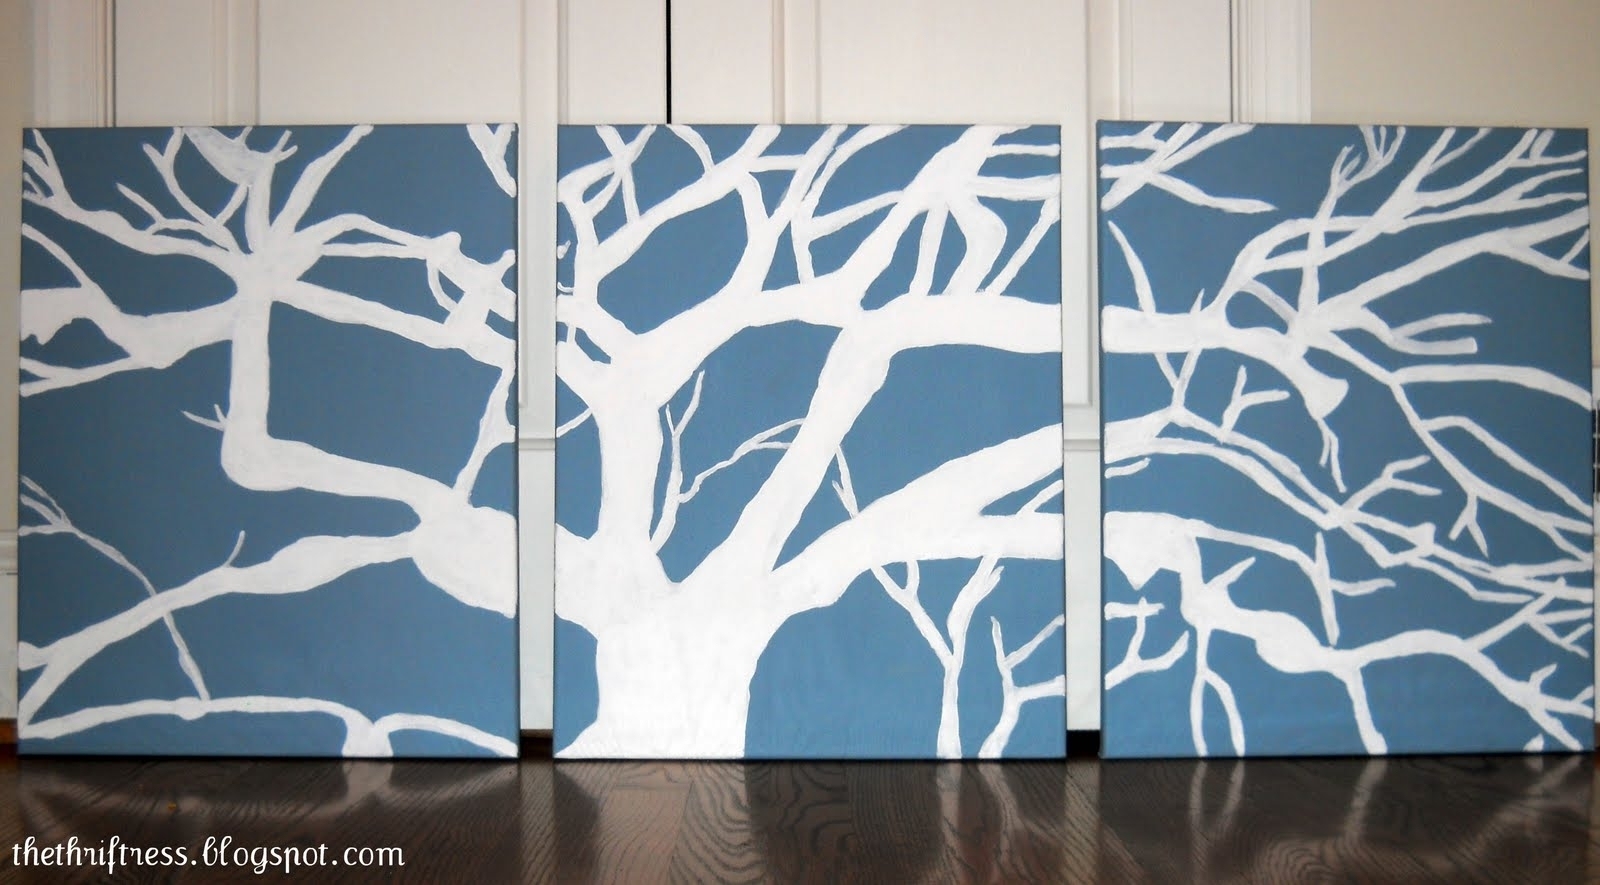 Diy Wall Art Stencils Paint Fabric - Dma Homes | #37854 intended for Latest Textured Fabric Wall Art